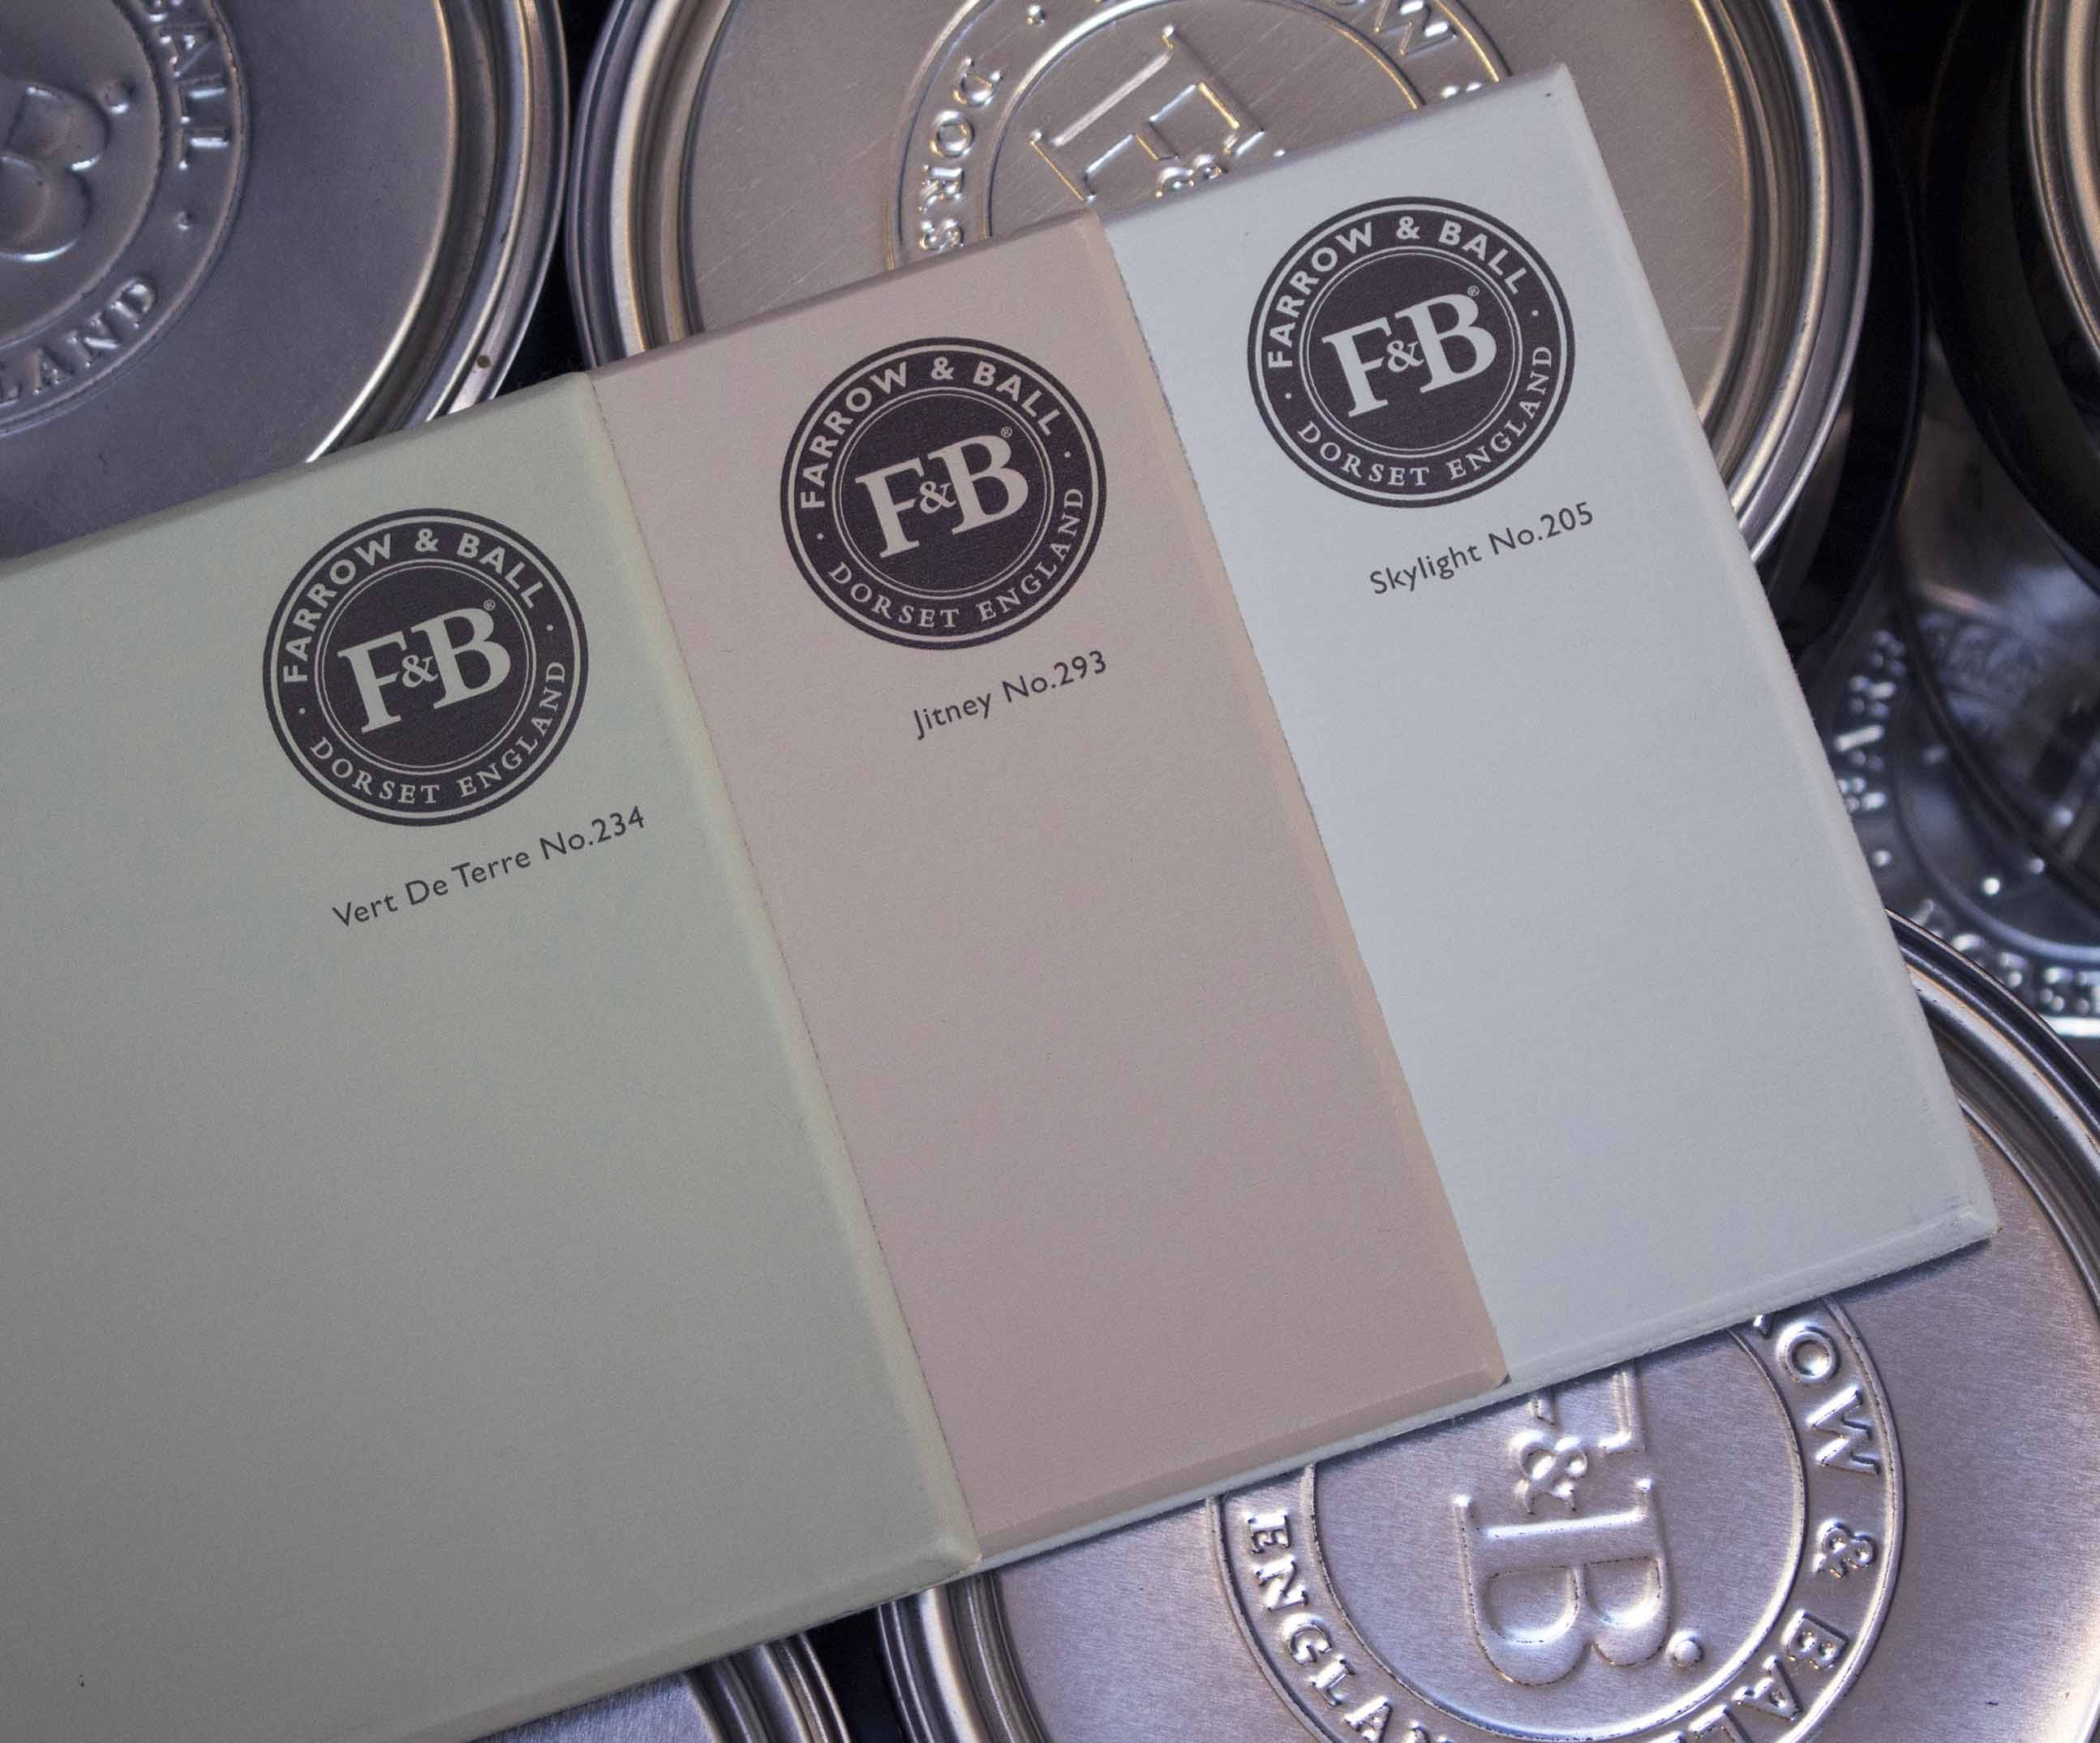 farrow&ball, farrow and ball, paint, decorating, paint brush, jitney